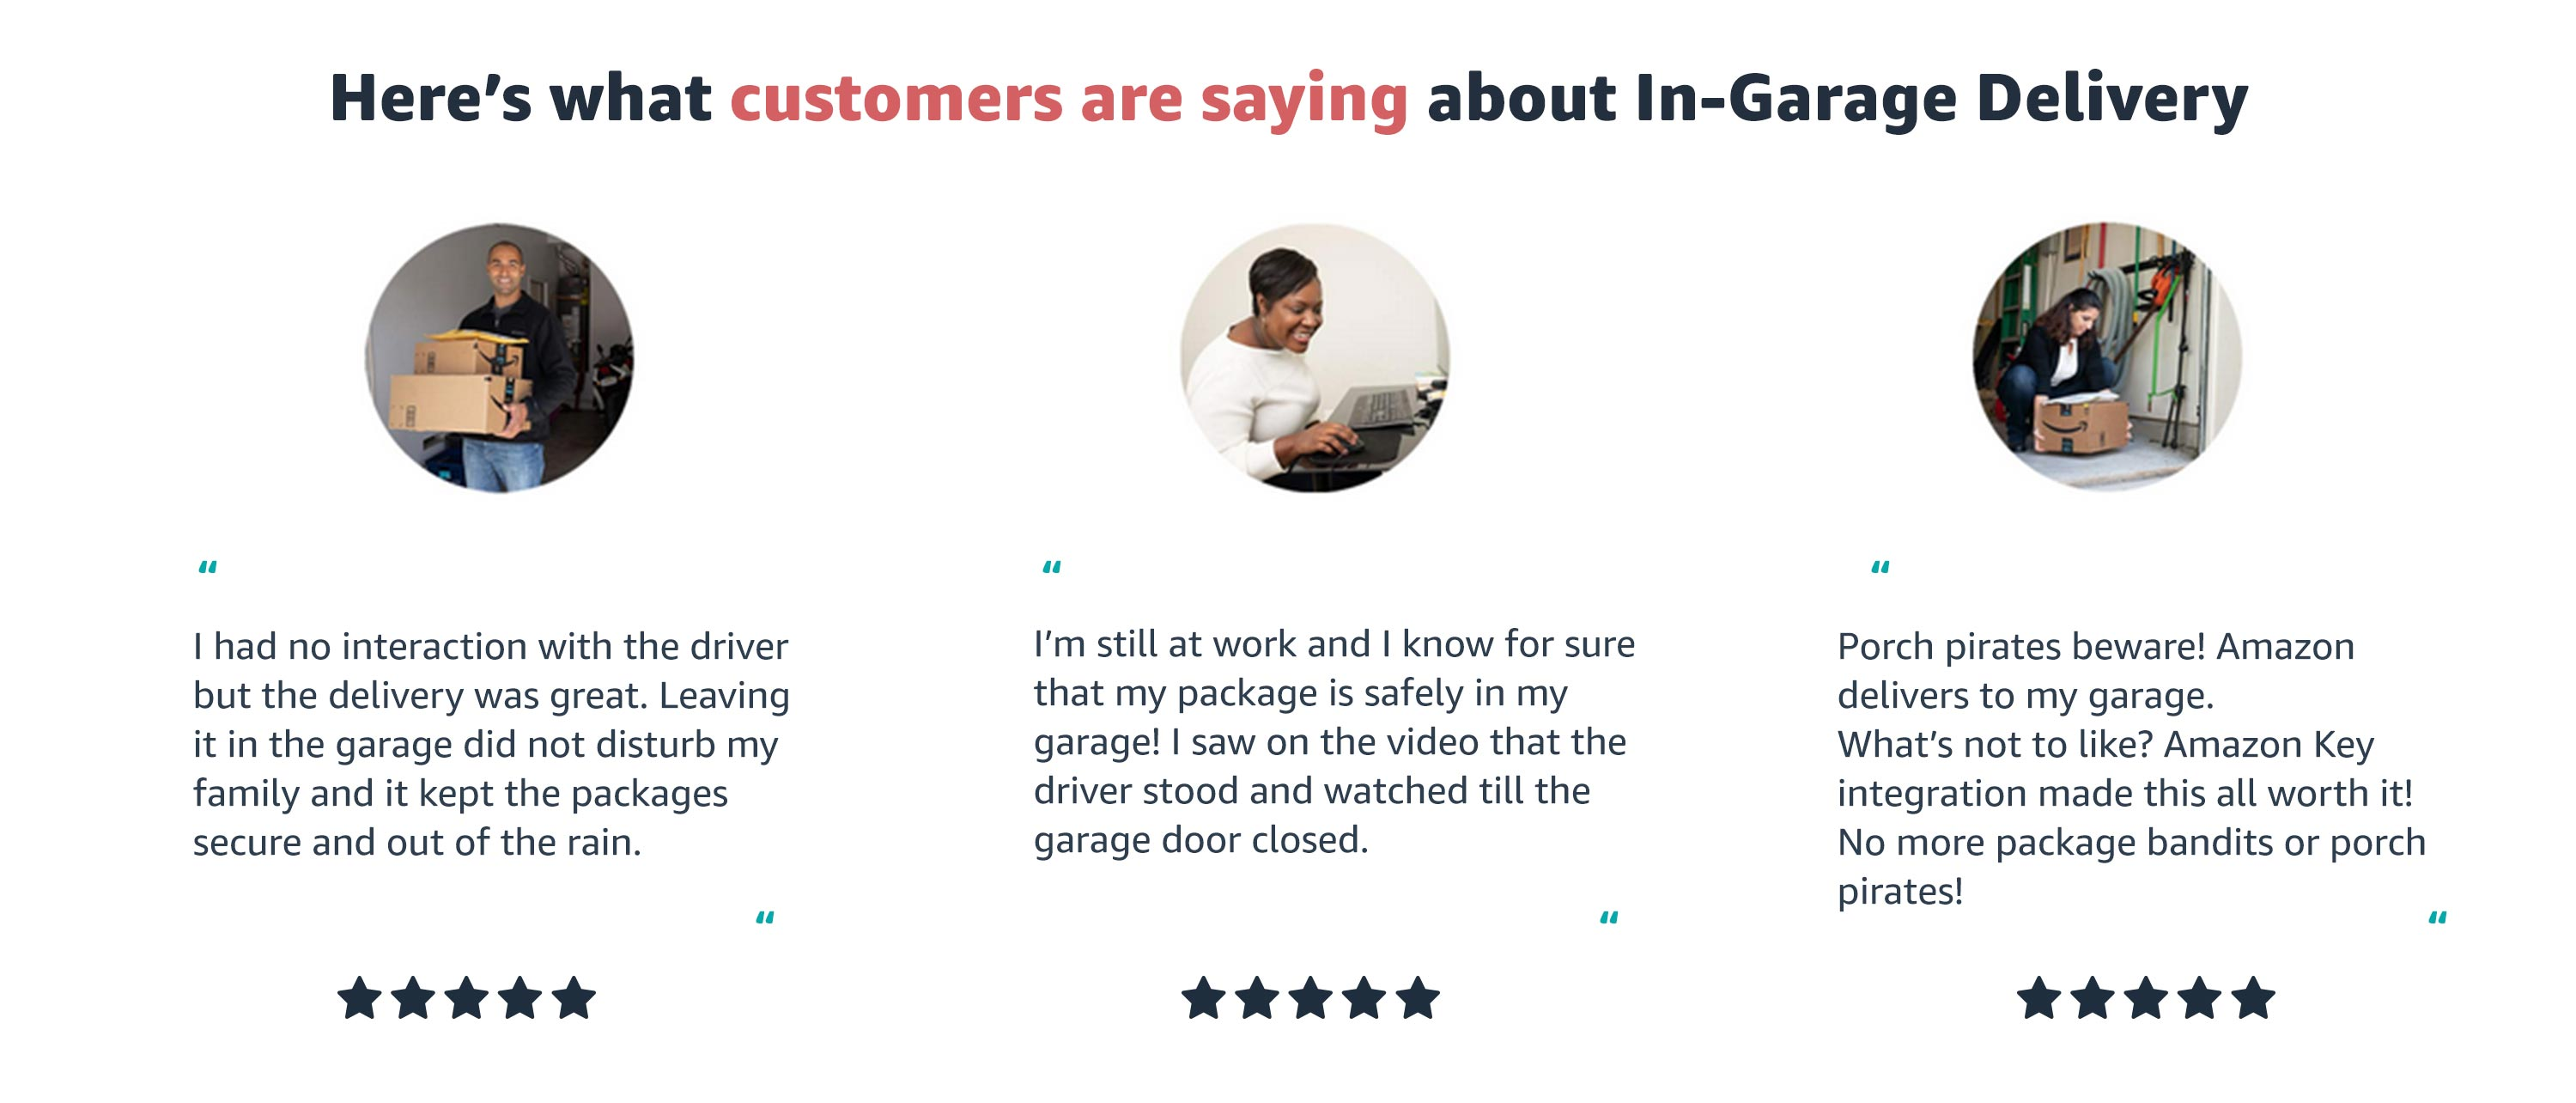 "Here's what customers are saying about In-Garage Delivery. ""Did not disturb my family and it kept the packages secure."""